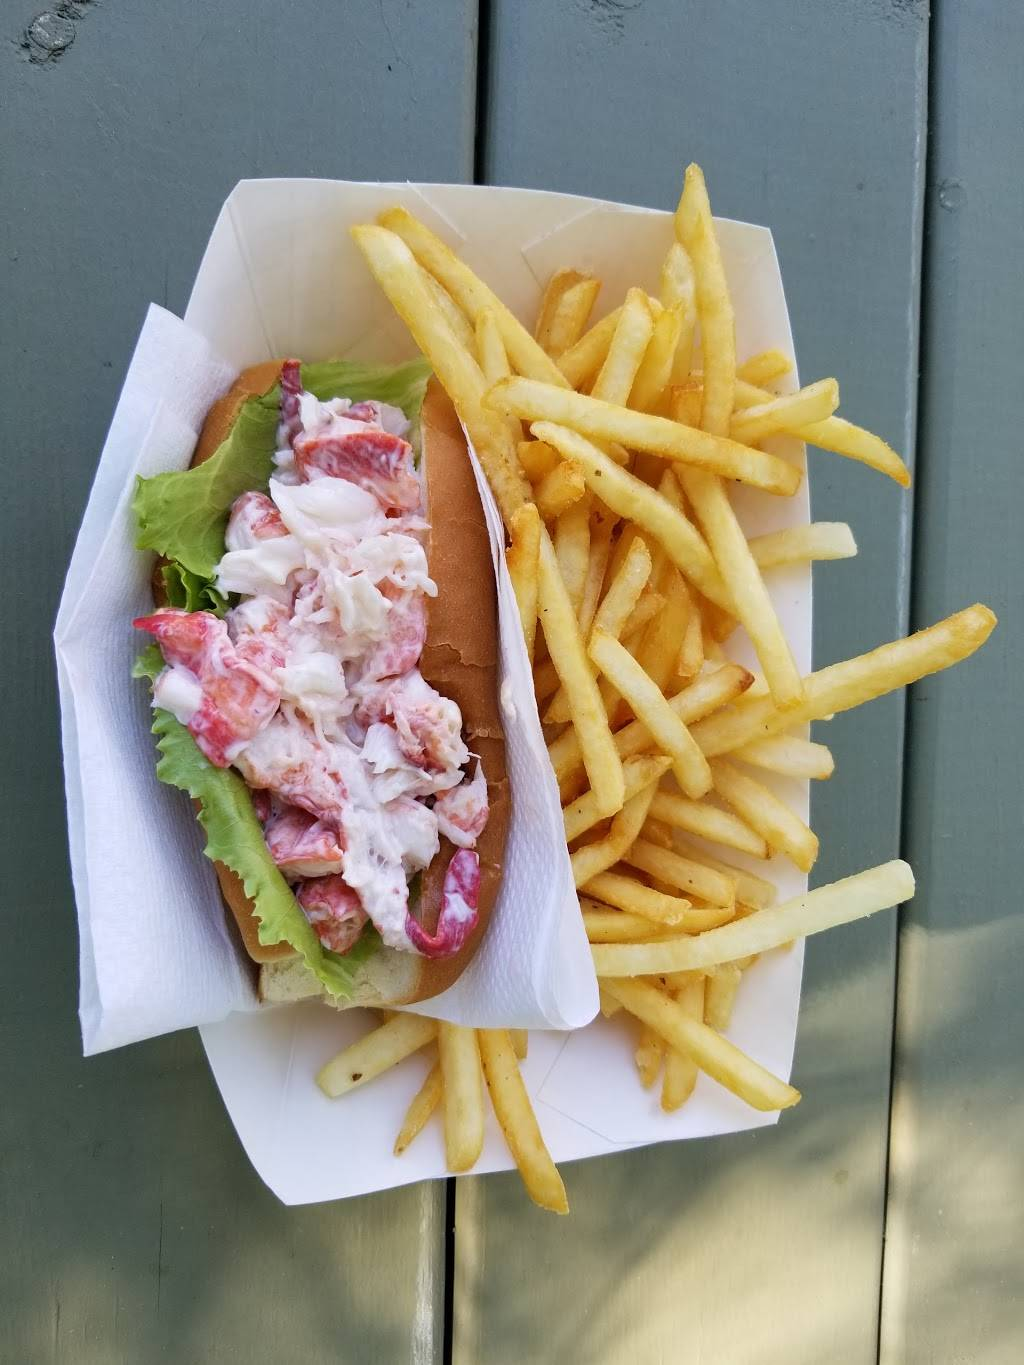 The Lunch Box   restaurant   113 Alfred Rd, Kennebunk, ME 04043, USA   2076042577 OR +1 207-604-2577